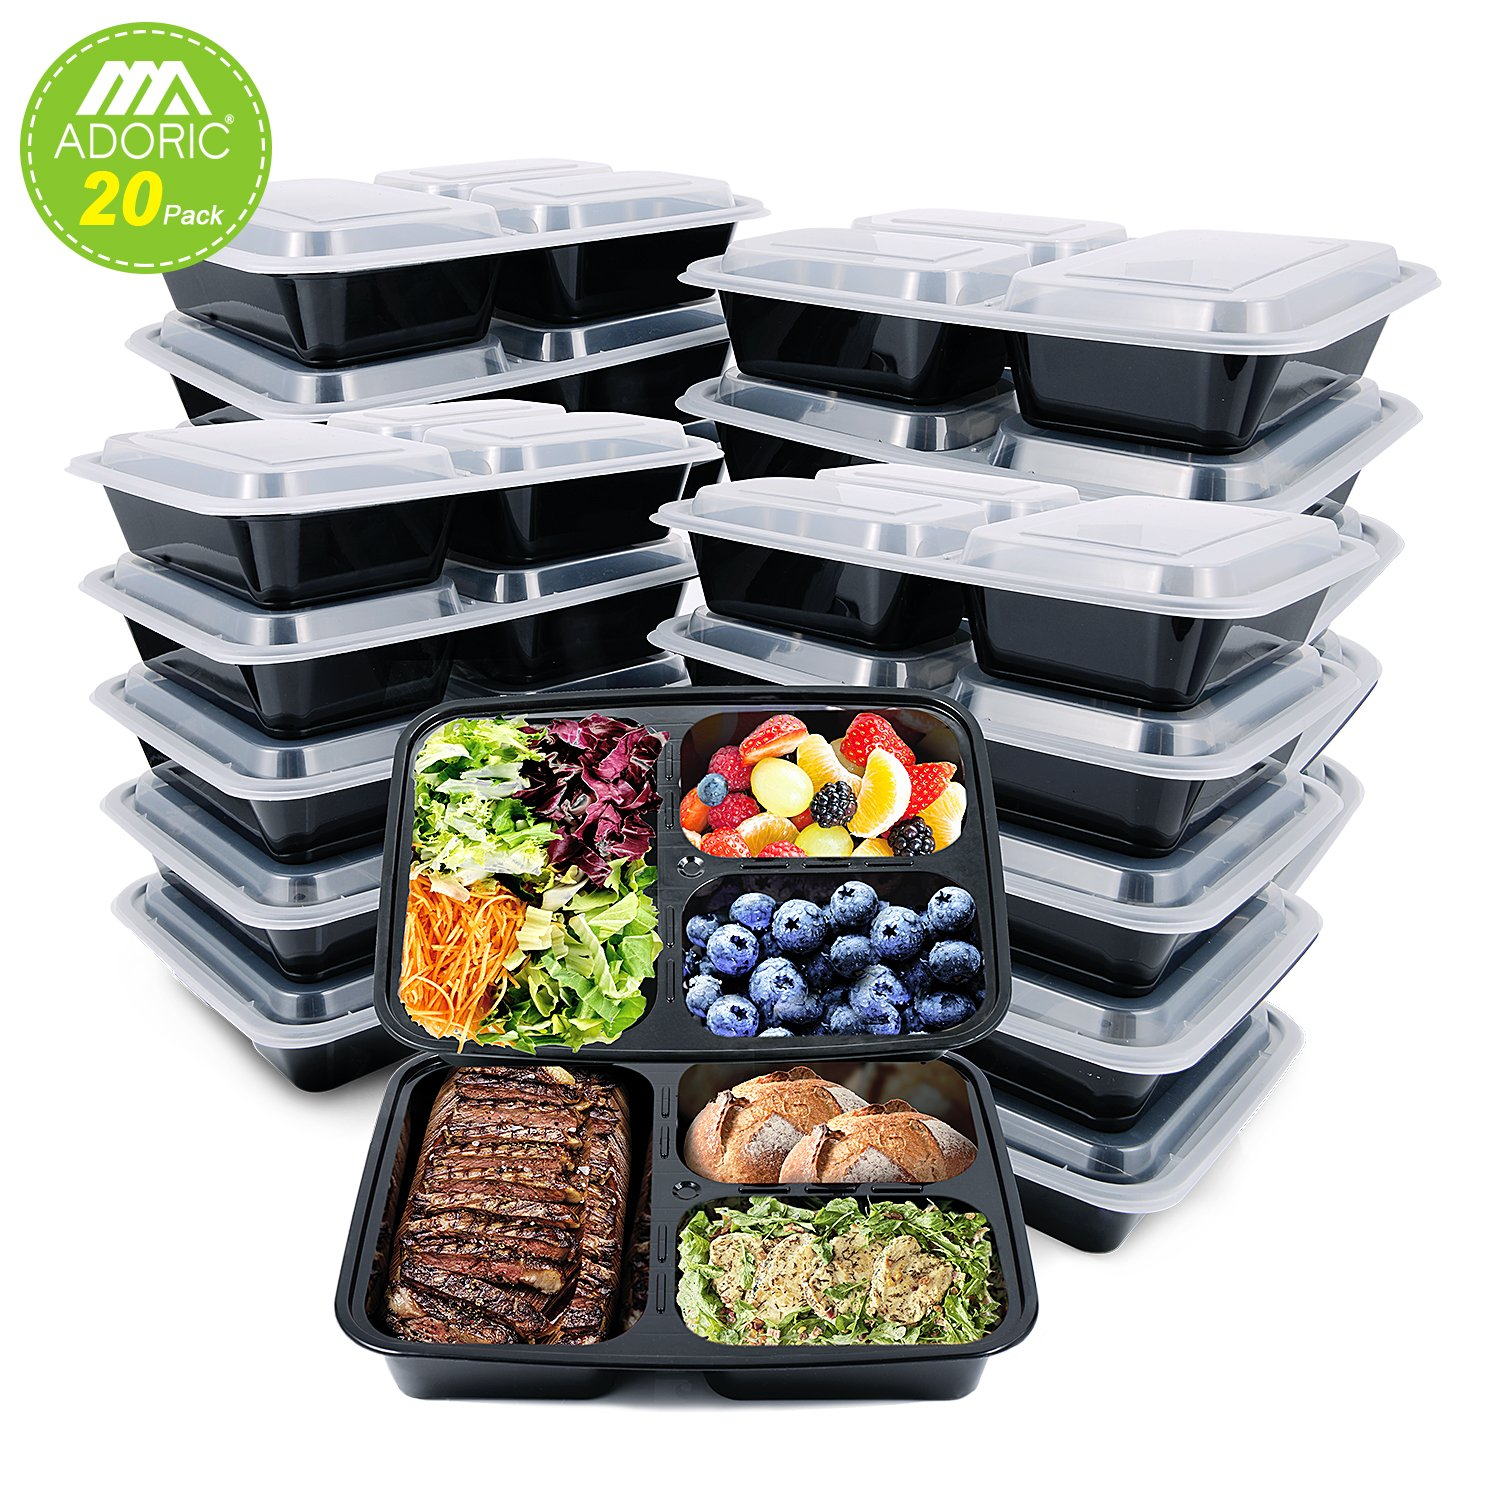 Adoric Storage Bento Box, Meal Prep Containers 3 Compartment(Black)